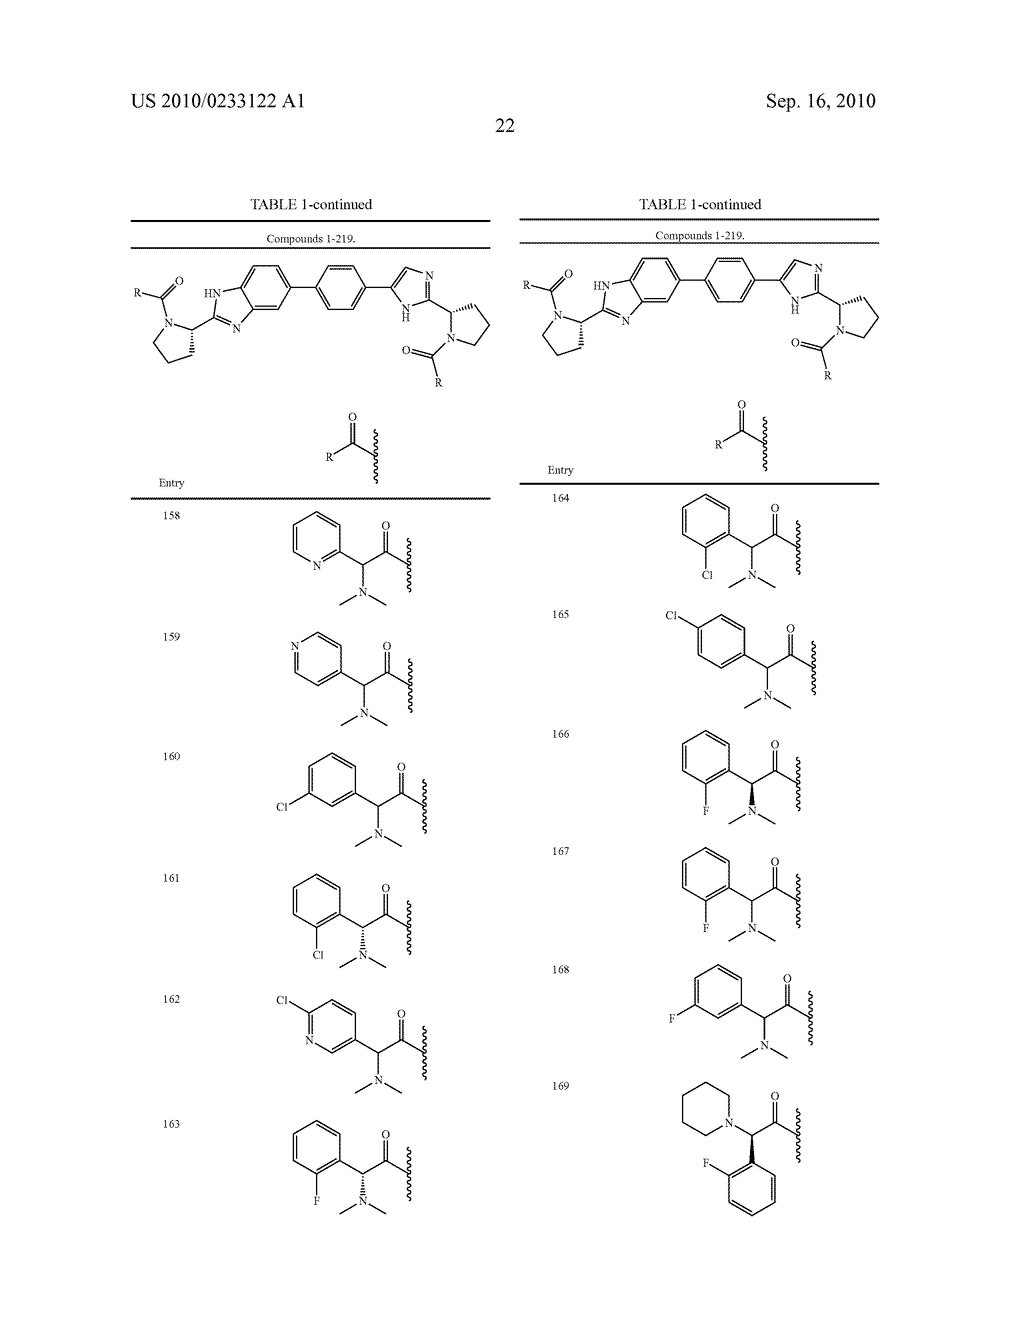 NOVEL BENZIMIDAZOLE DERIVATIVES - diagram, schematic, and image 23